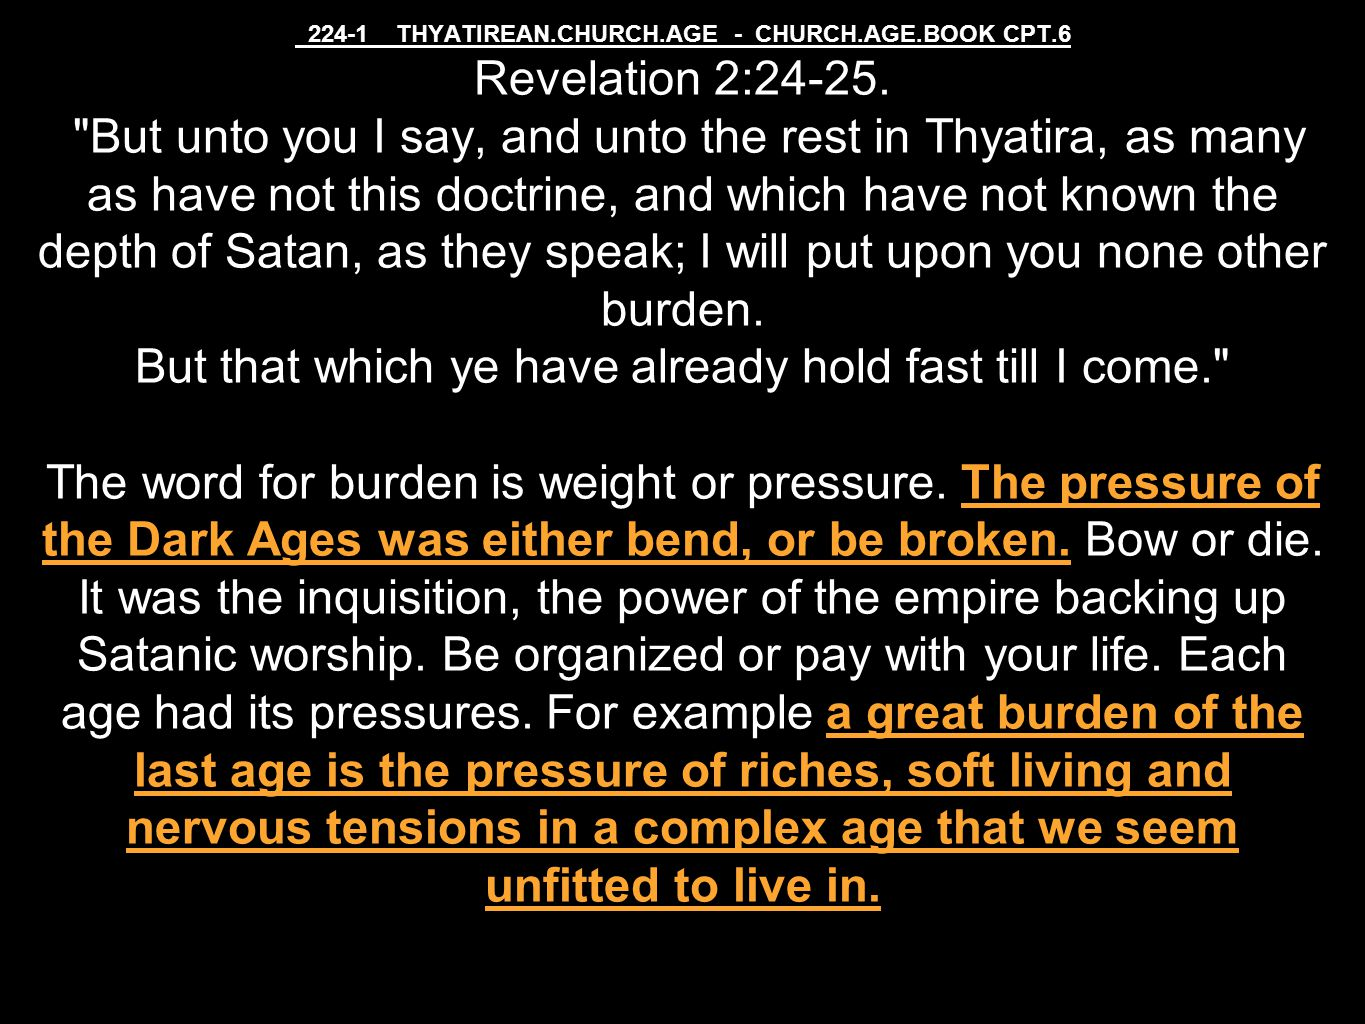 224-1 THYATIREAN.CHURCH.AGE - CHURCH.AGE.BOOK CPT.6 Revelation 2:24-25.